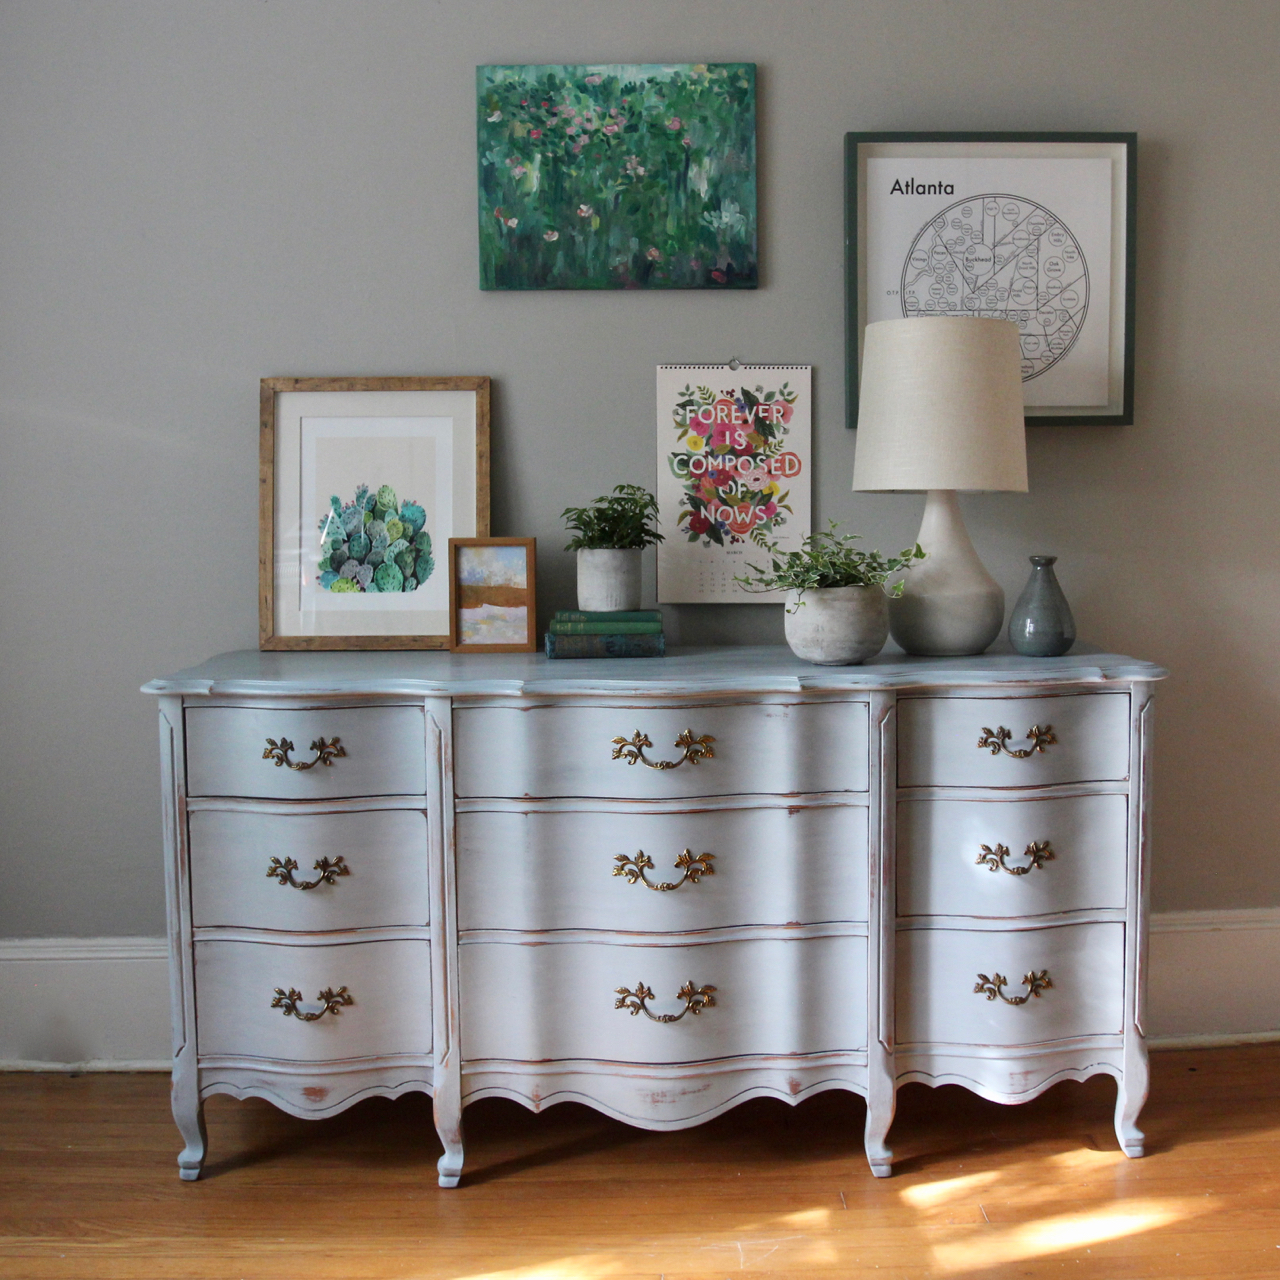 jo-torrijos-a-simpler-design-atlanta-painted-furniture-annie-sloan-gray-french-provincial-dresser - 9.jpg